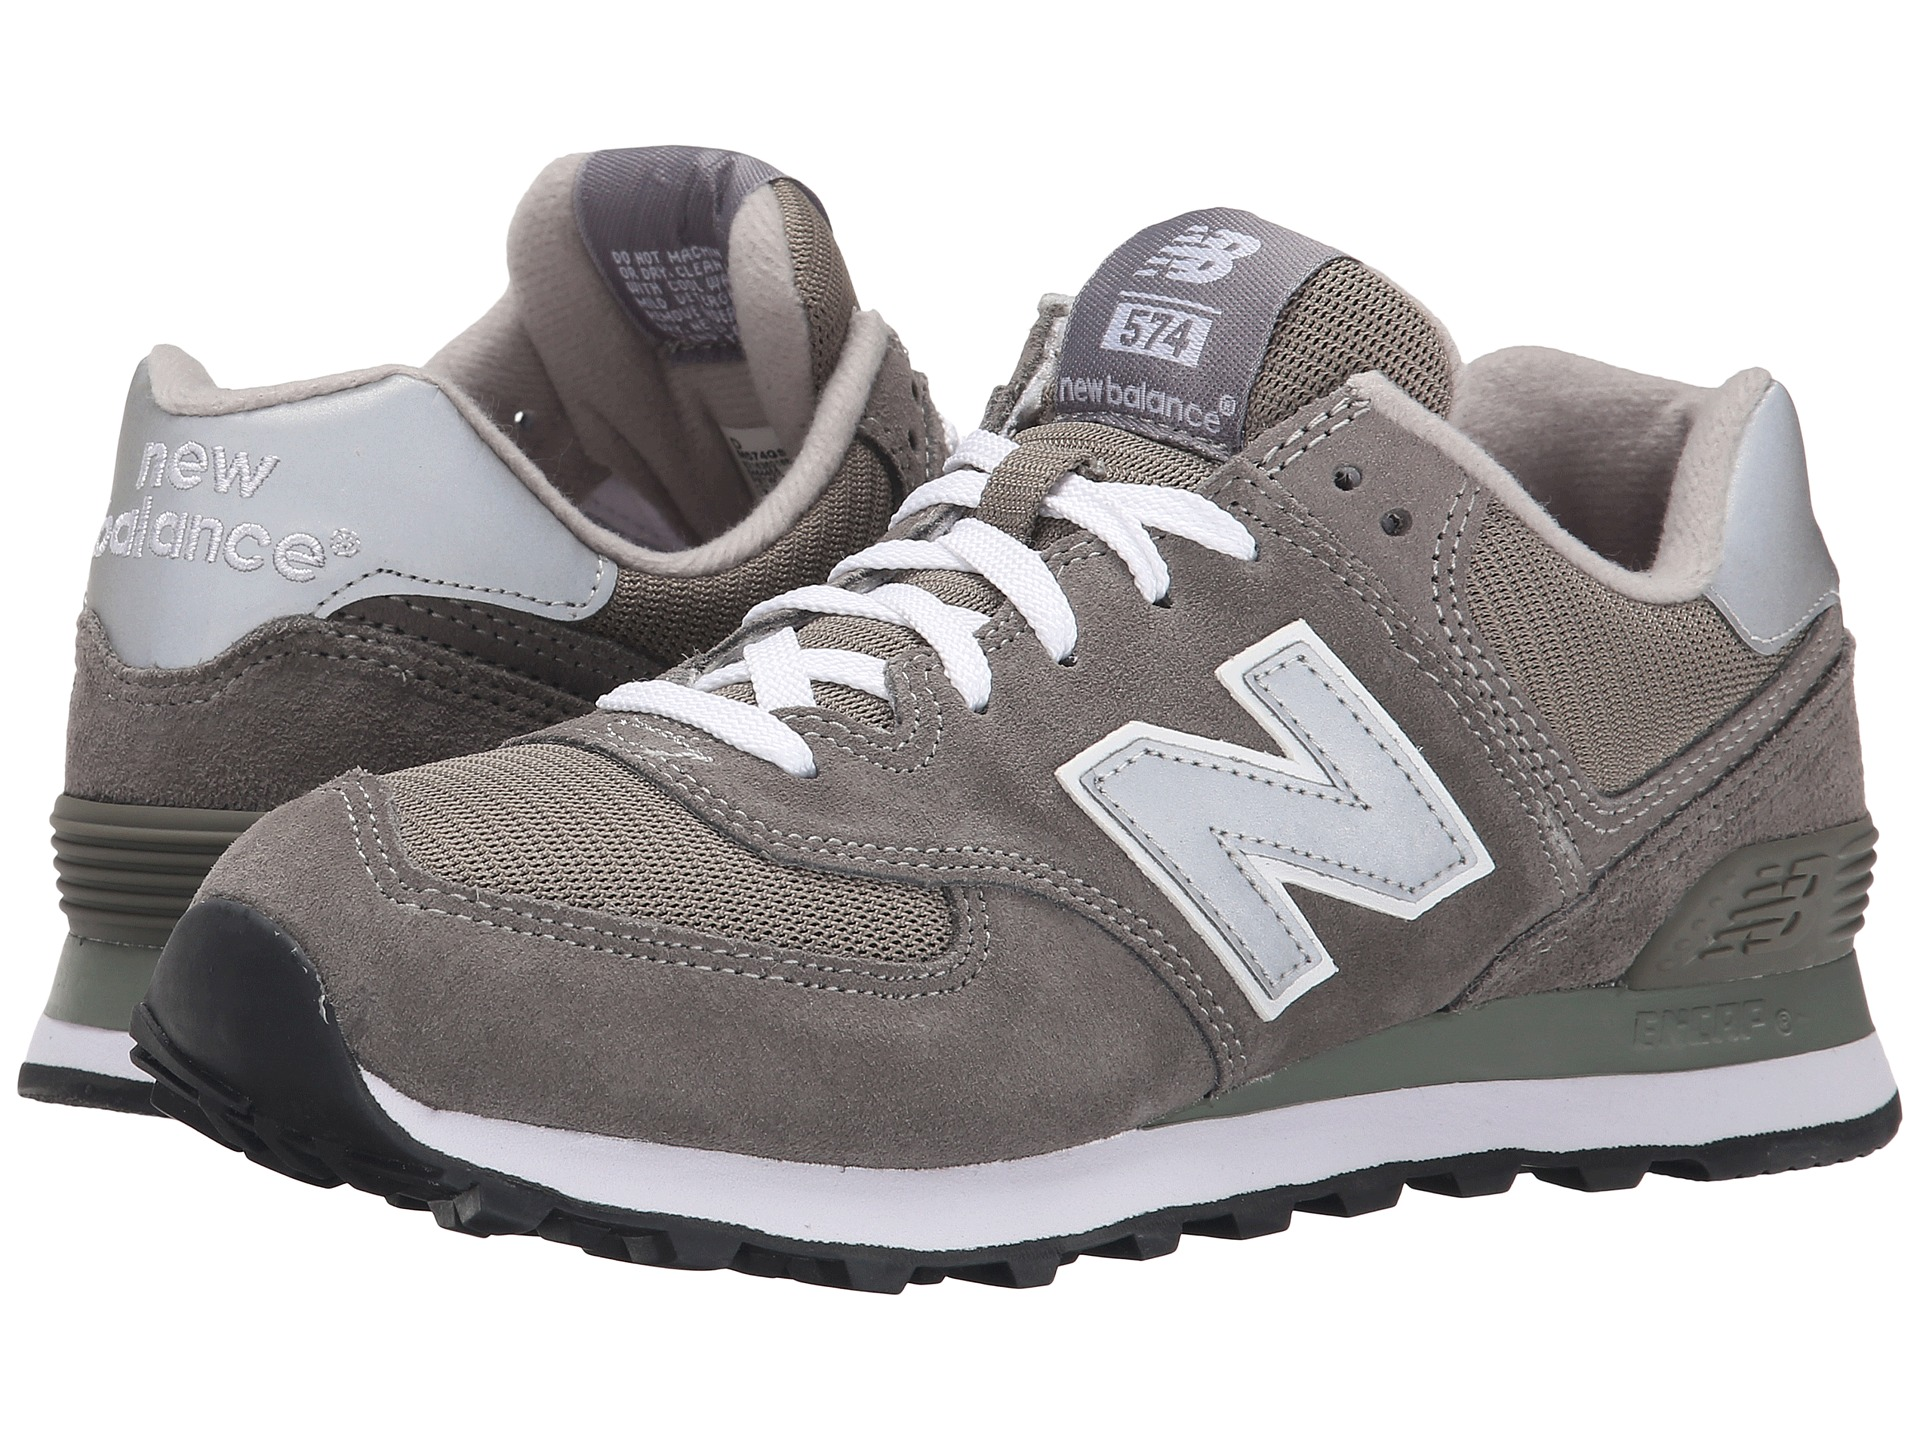 3aab75b1441 Cheap new balance 547 mens Buy Online >OFF73% Discounted